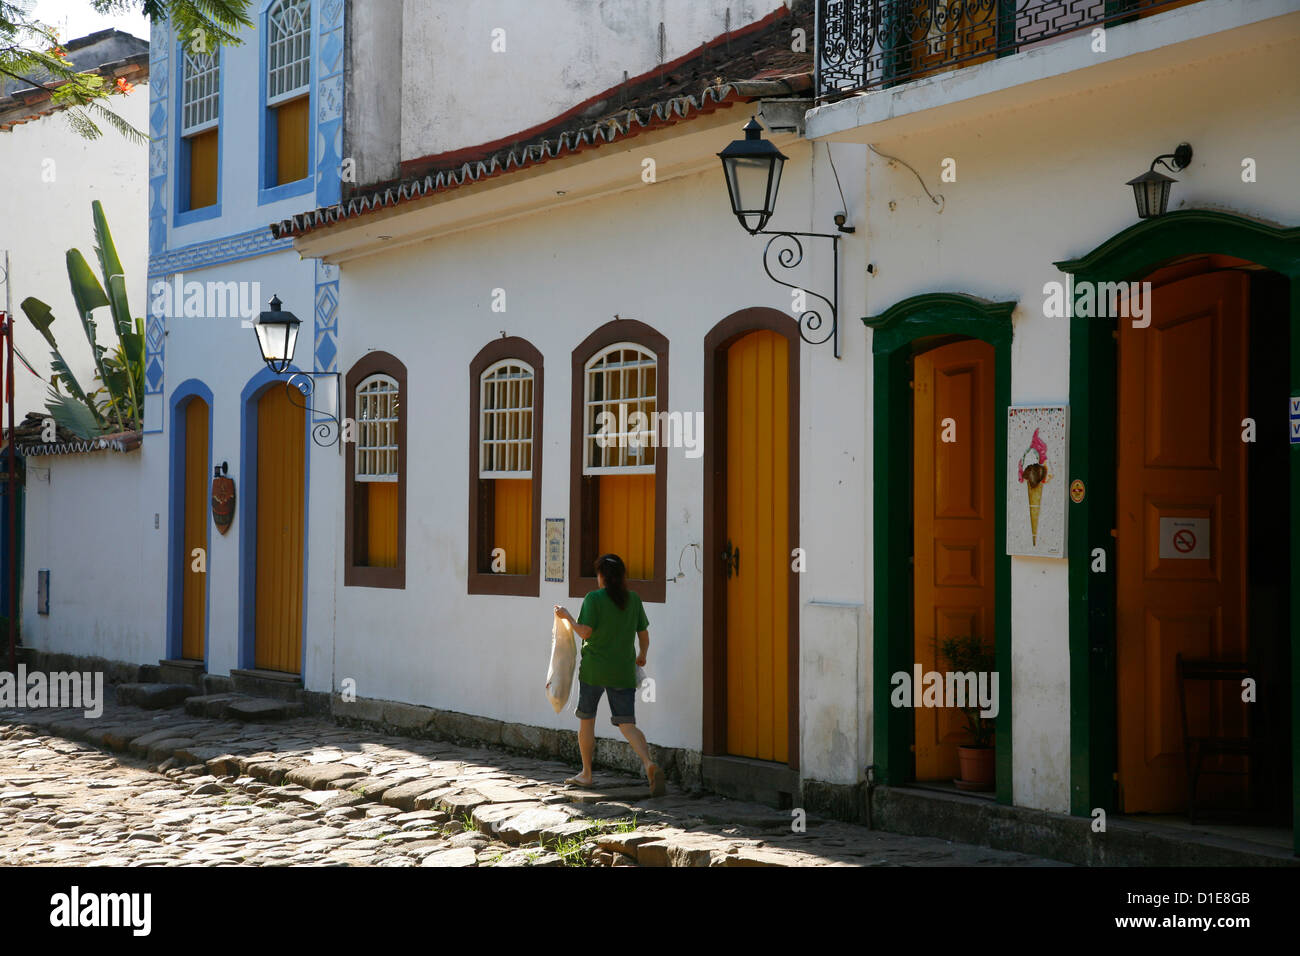 Typical colonial houses in the historic part of Parati, Rio de Janeiro State, Brazil, South America Stock Photo